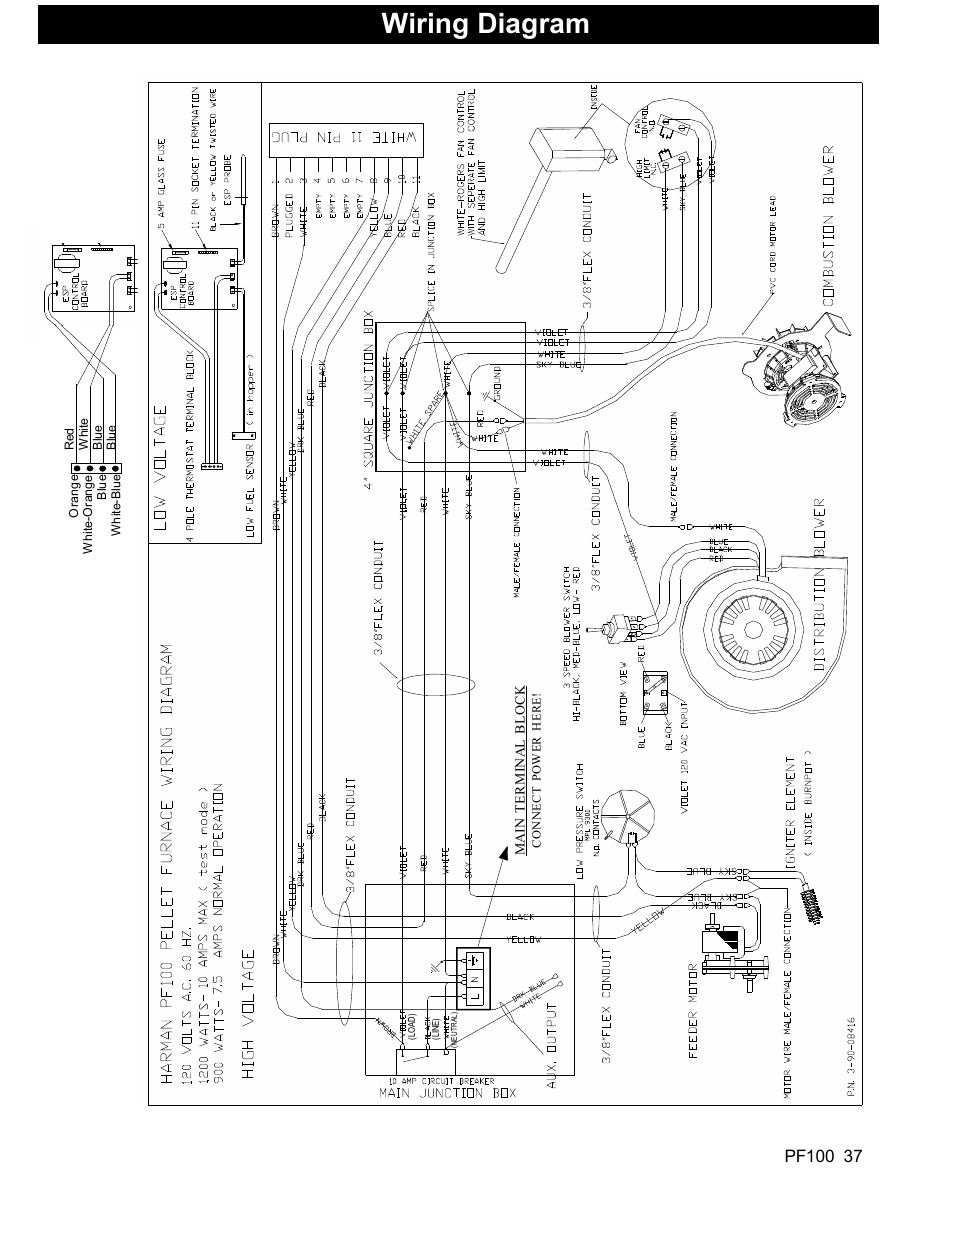 Electrical Wiring For Stove Wiring Diagrams Hubs Manual Guide